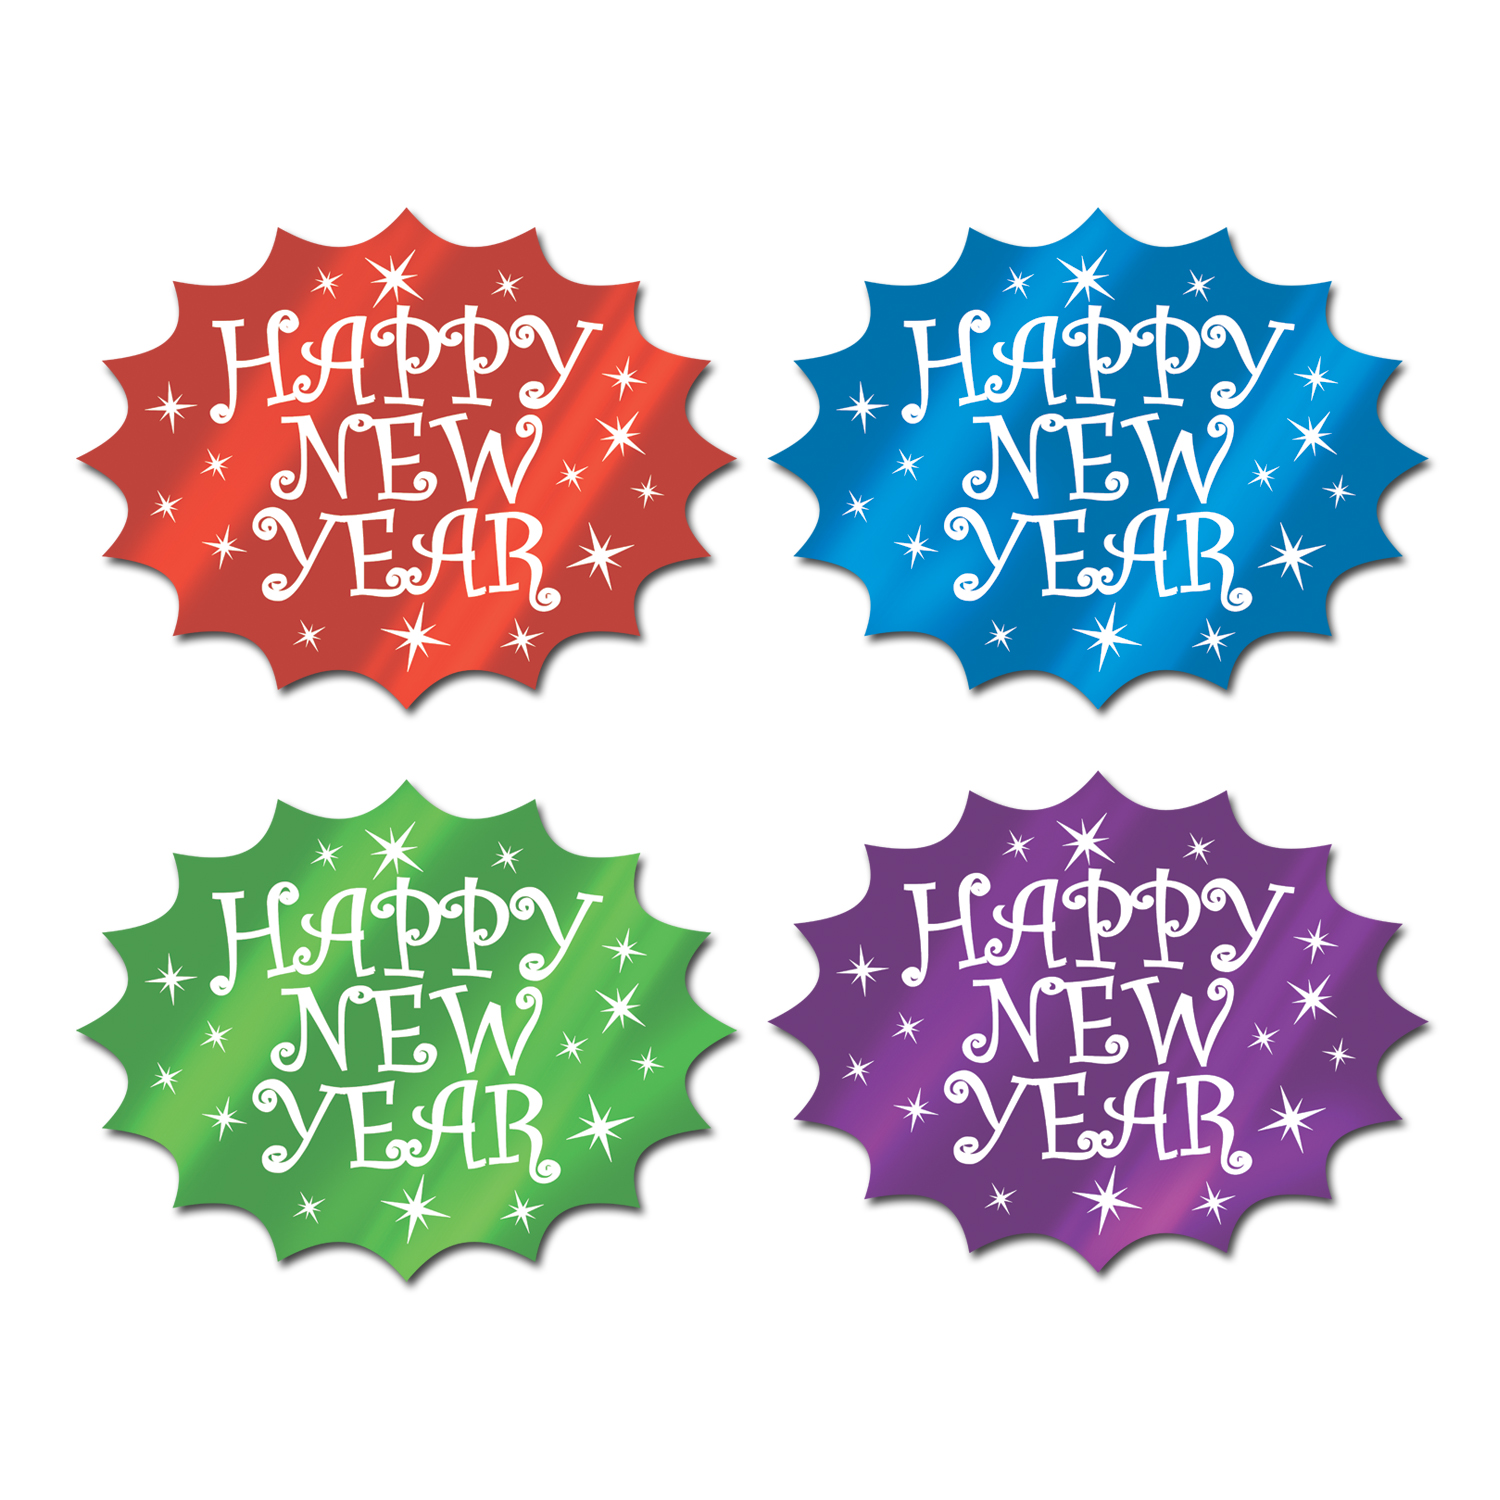 Foil Happy New Year Cutouts 14.75in asstd